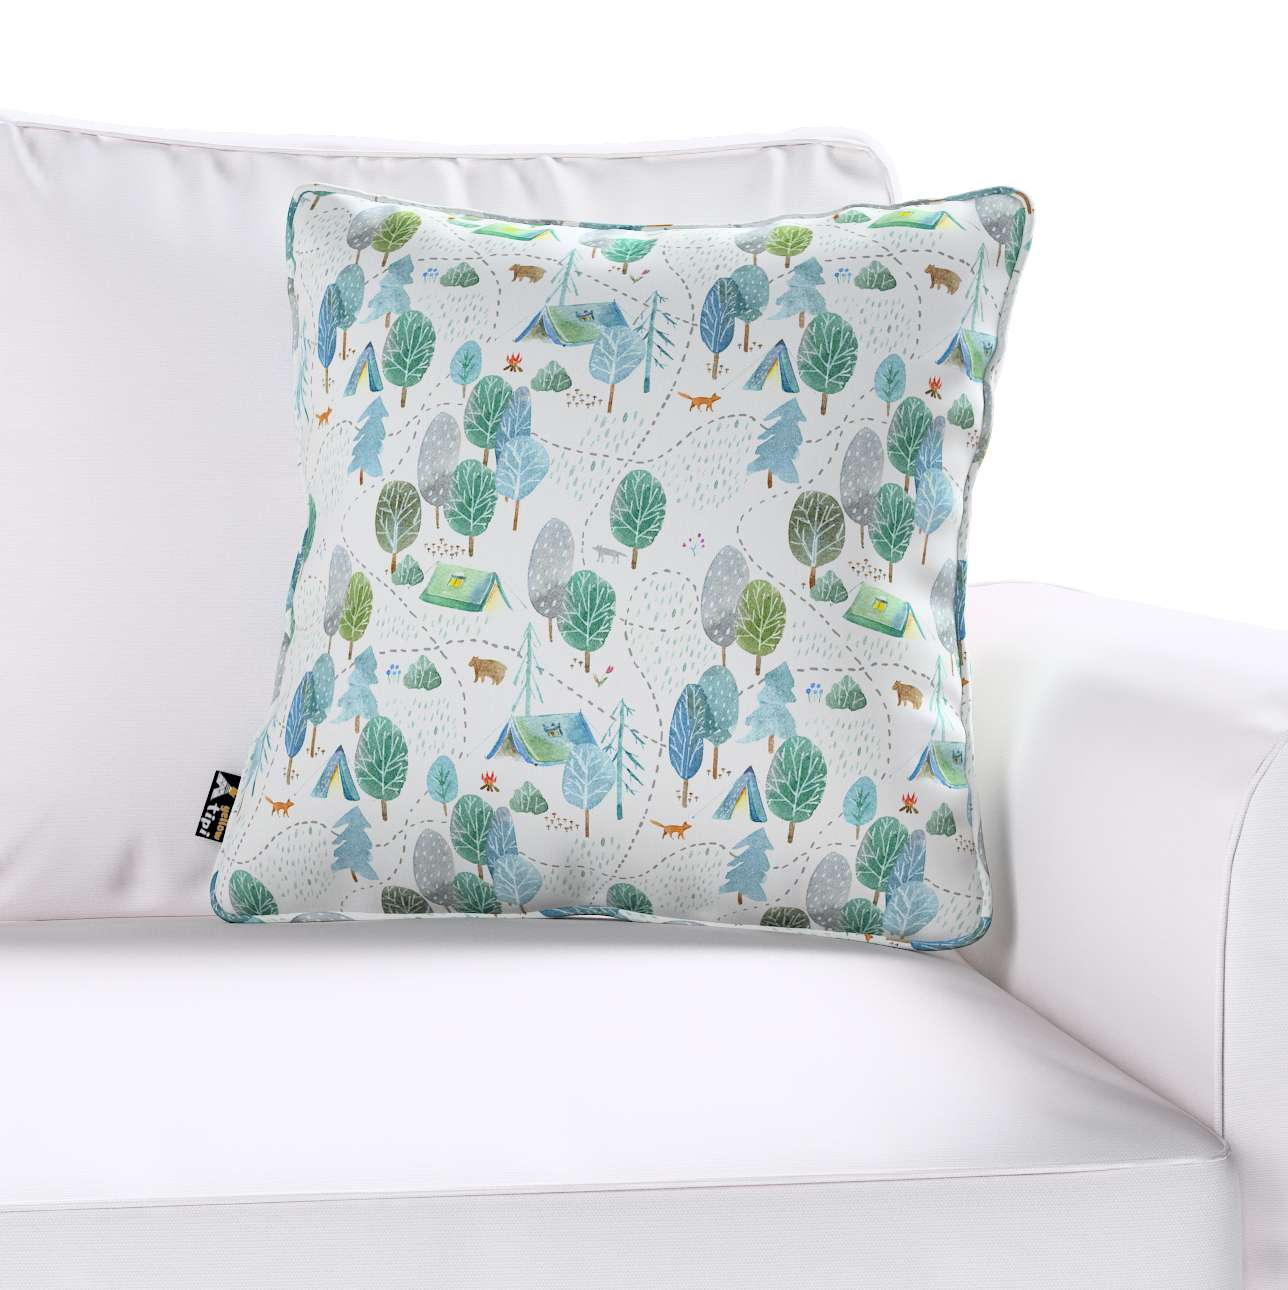 Lola piped cushion cover in collection Magic Collection, fabric: 500-21